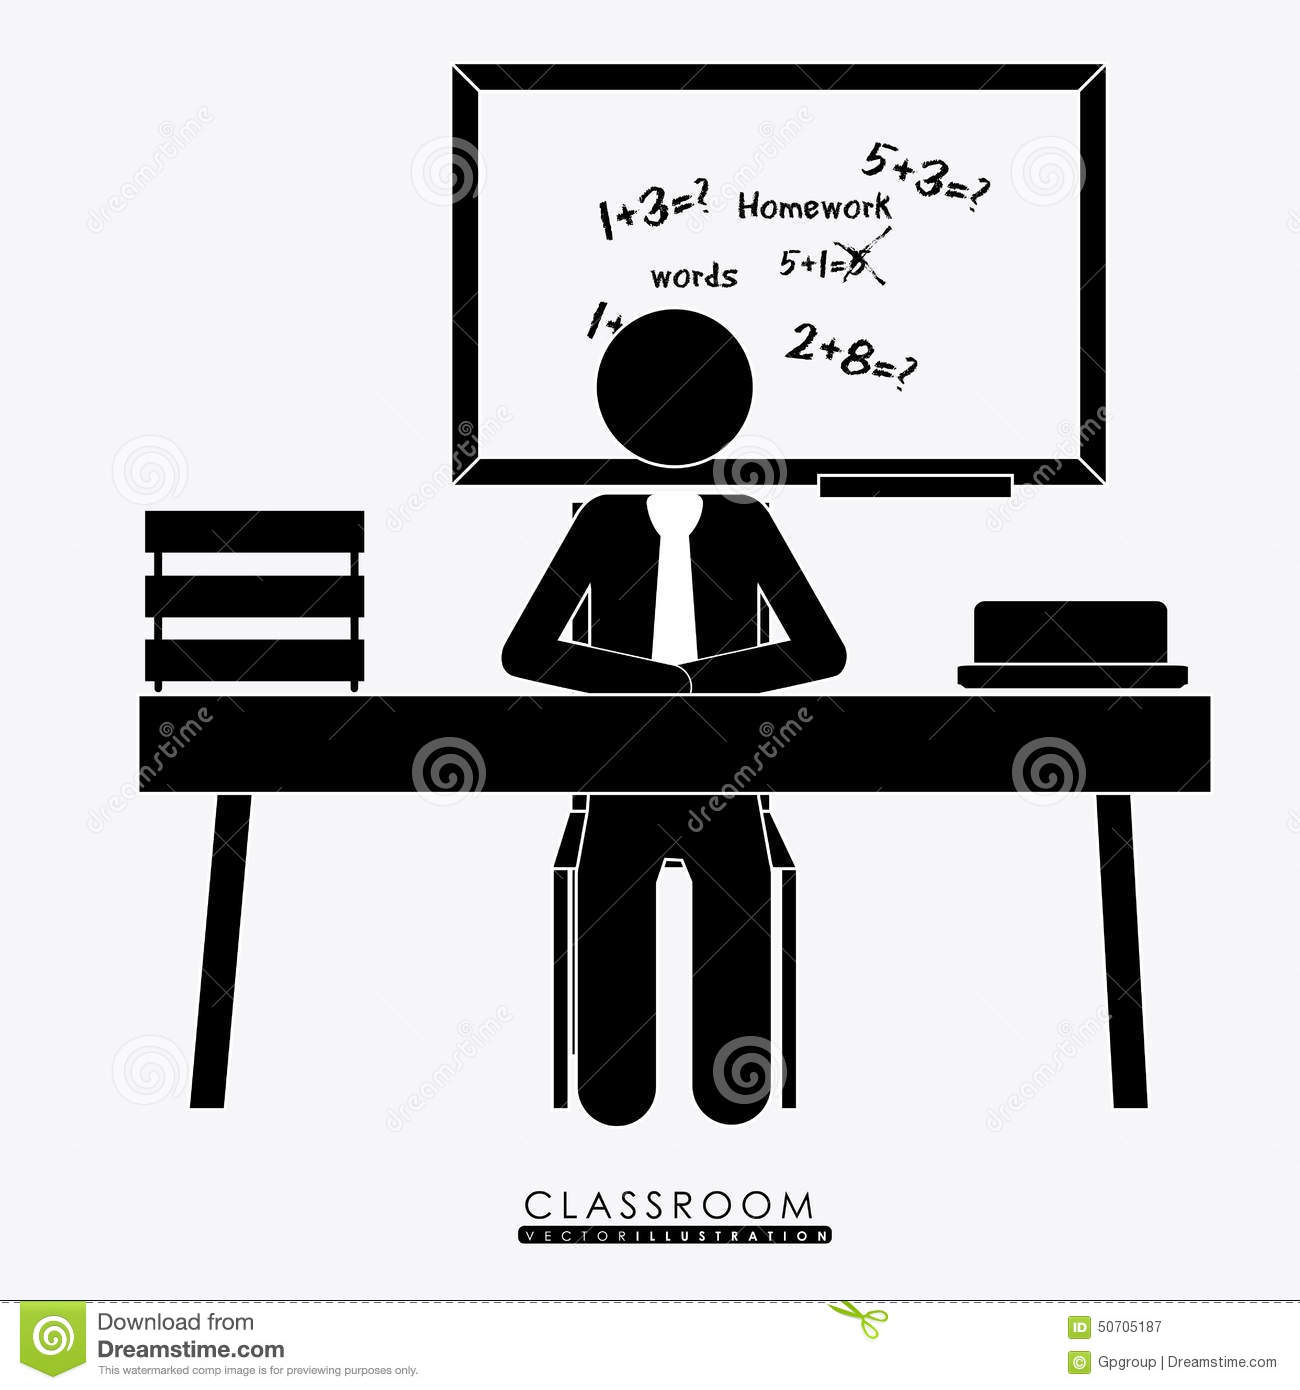 Class Room Desing Vector Illustration Cartoon Vector